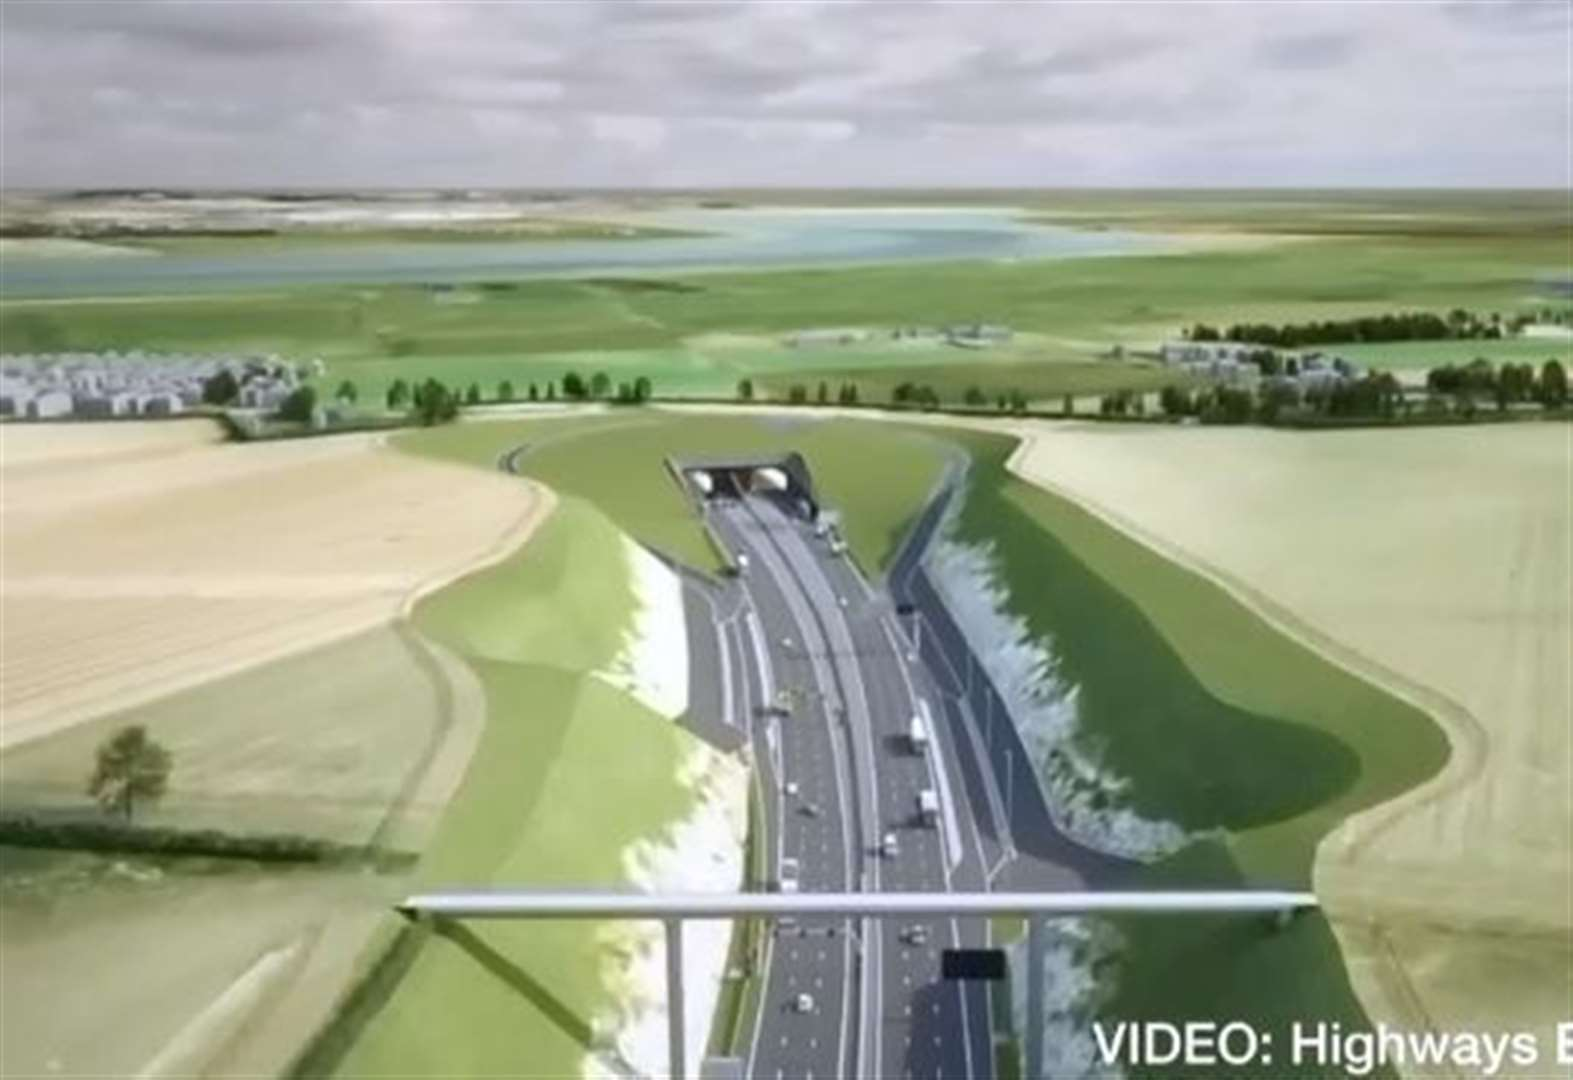 Firms to get Lower Thames Crossing chance